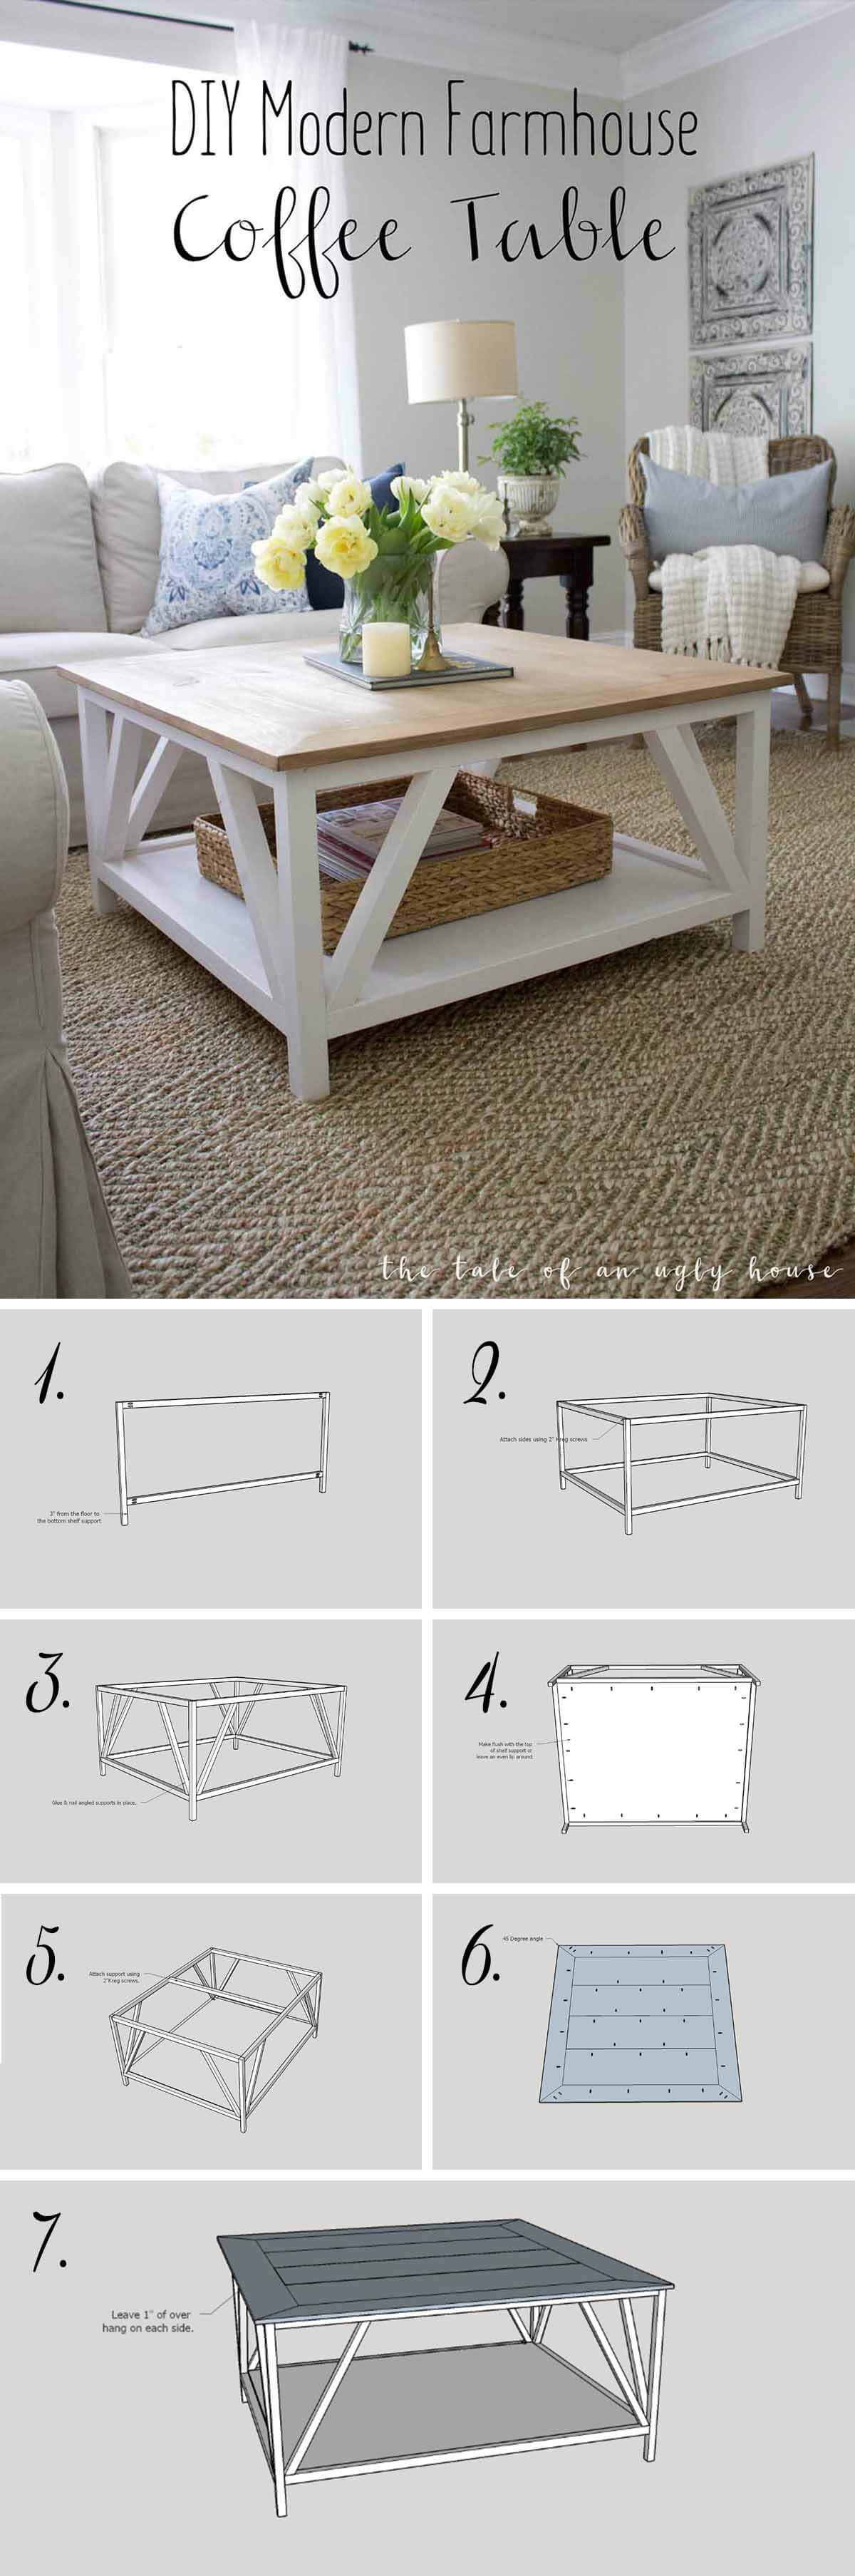 best diy farmhouse coffee table ideas and designs for homebnc white end pretty cottage inspired bright look heavy duty dog crate black gloss side lift top edmonton outdoor glass